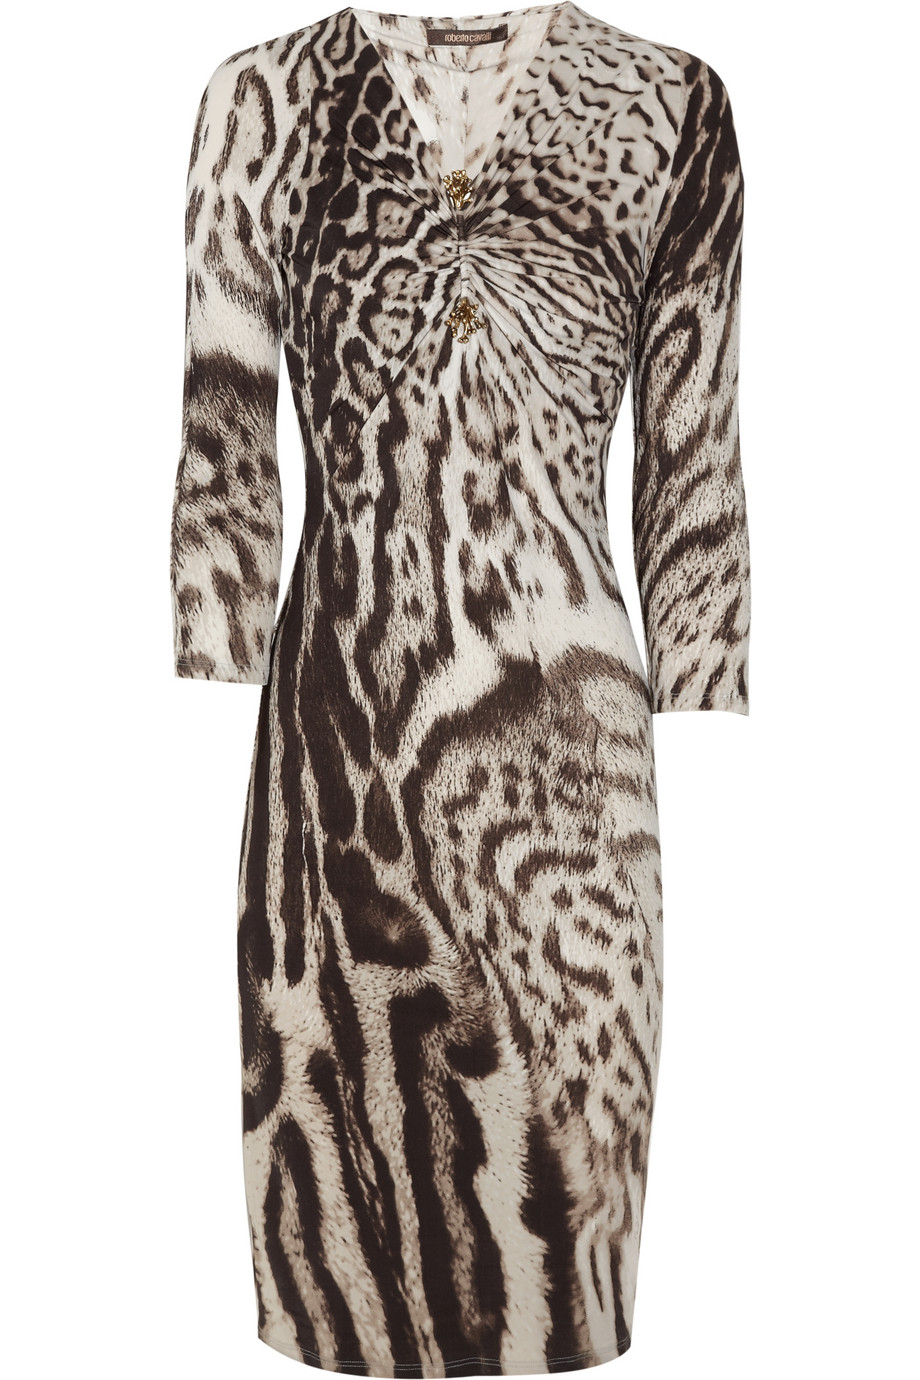 4fe09e7bce Lyst - Roberto Cavalli Animal-Print Stretch Jersey Dress in Brown